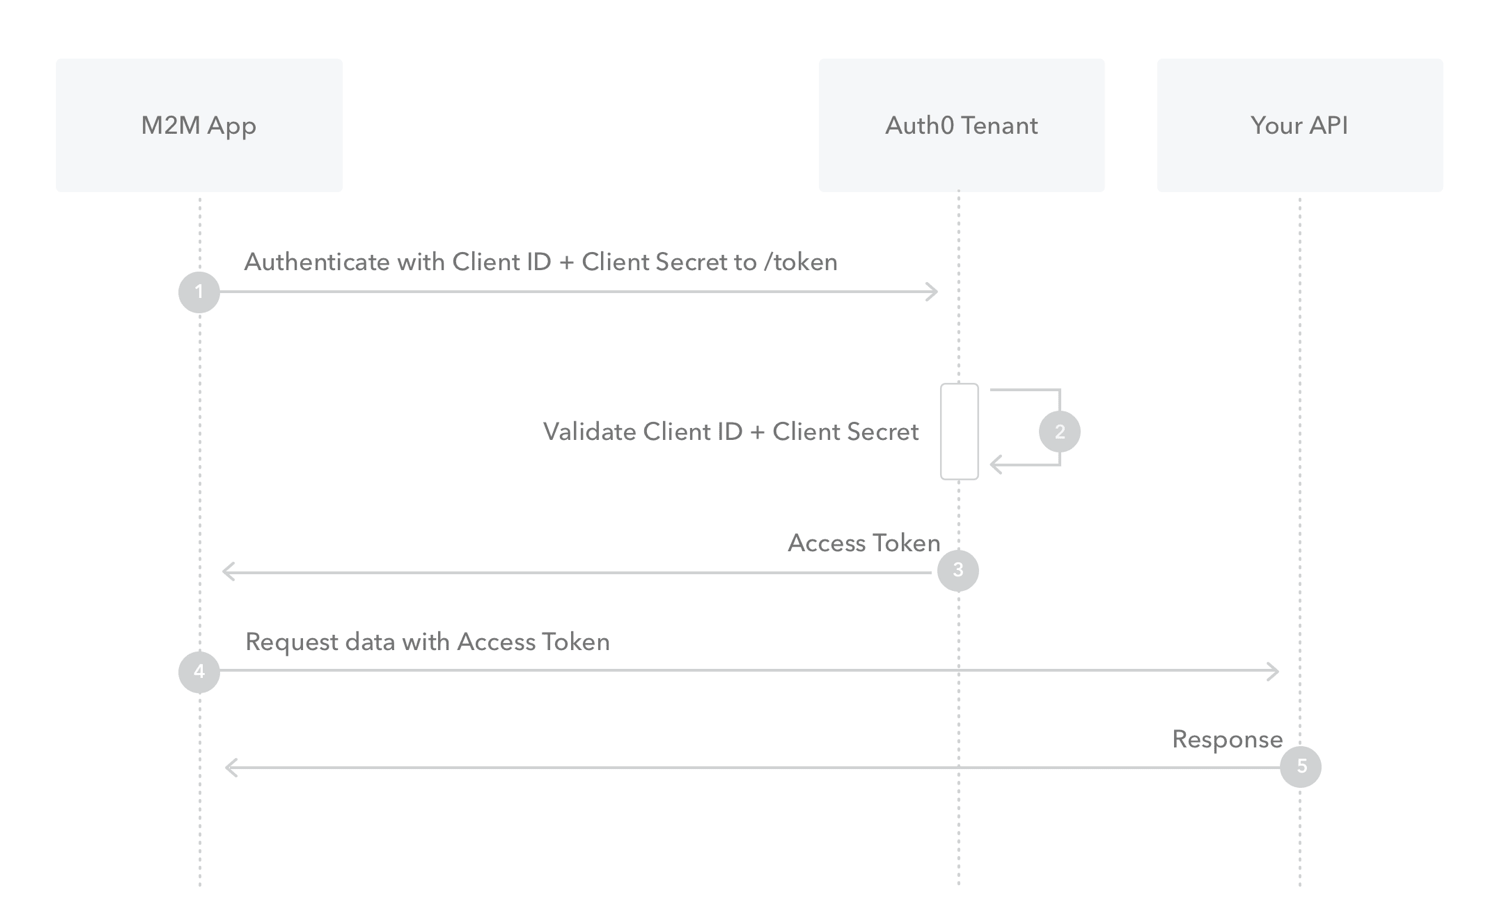 Flows - Client Credentials - Authorization sequence diagram